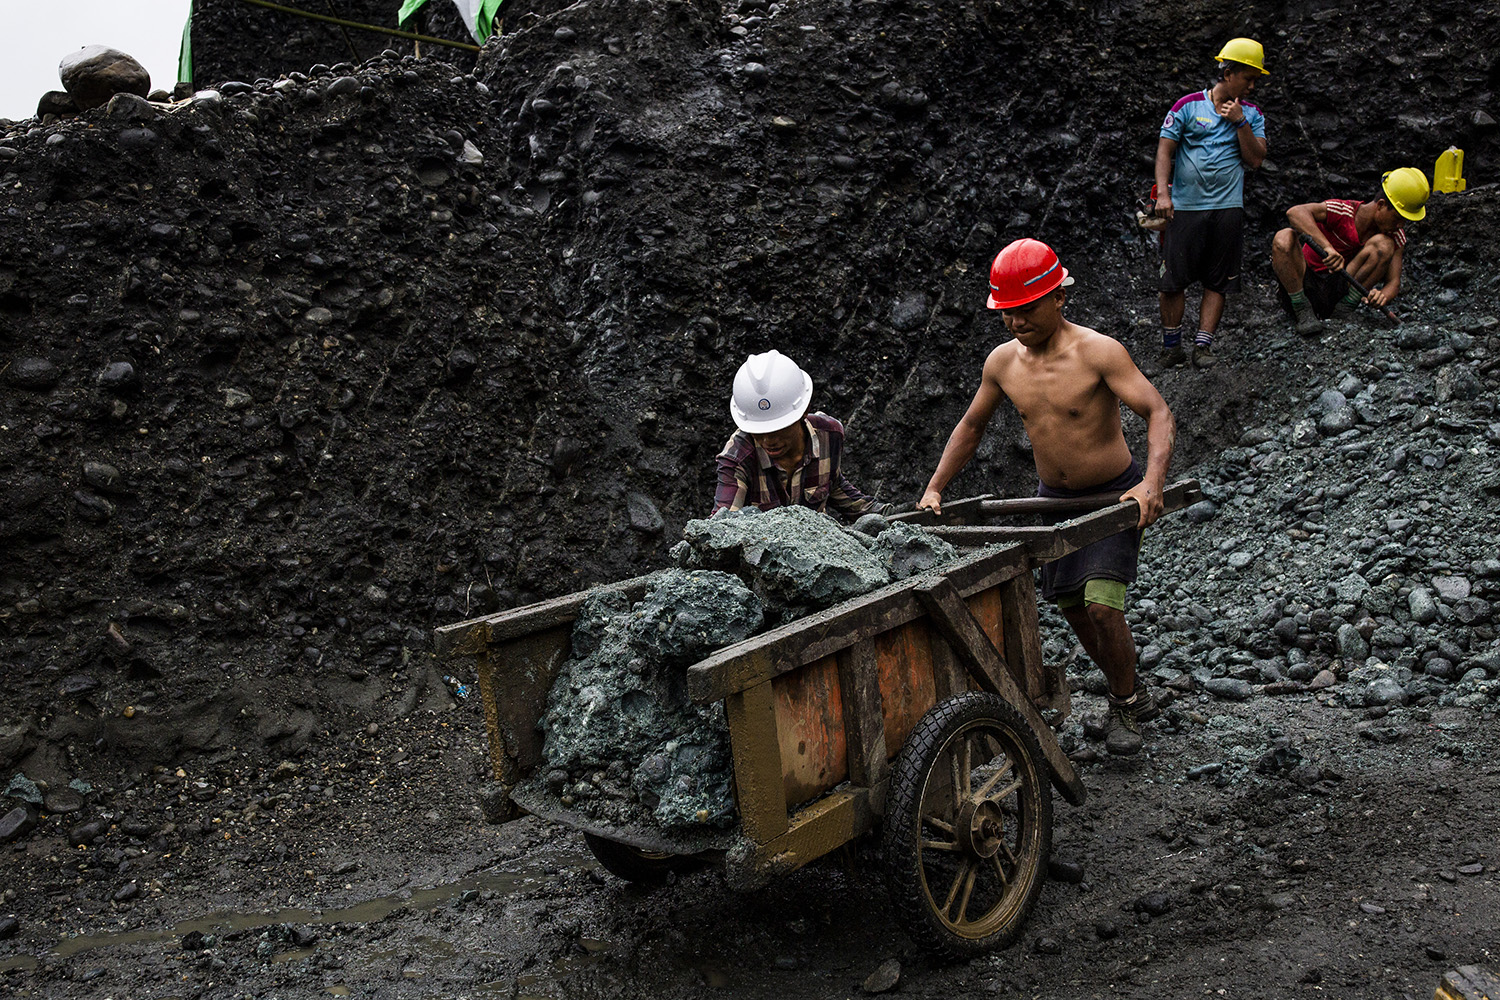 A team of freelance miners cart away stones from a jade mine in Hpakant on July 17.